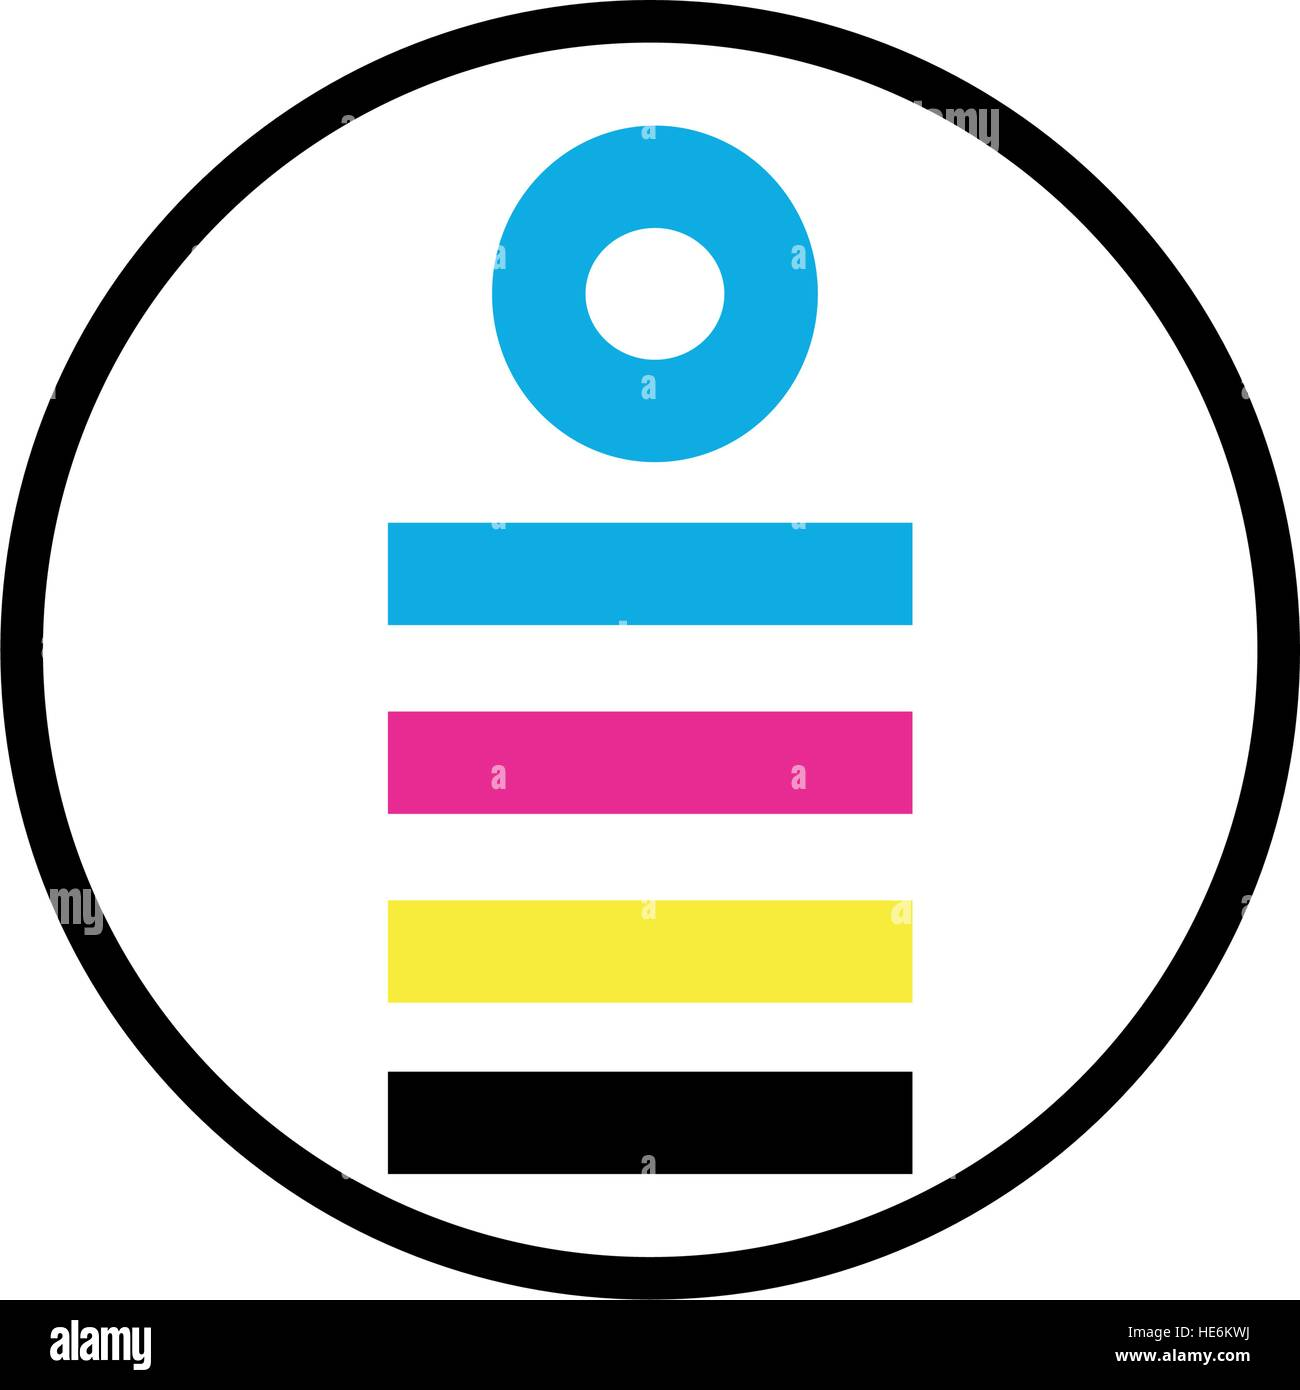 CMYK Icon Design Concept, EPS 8 supported. - Stock Image